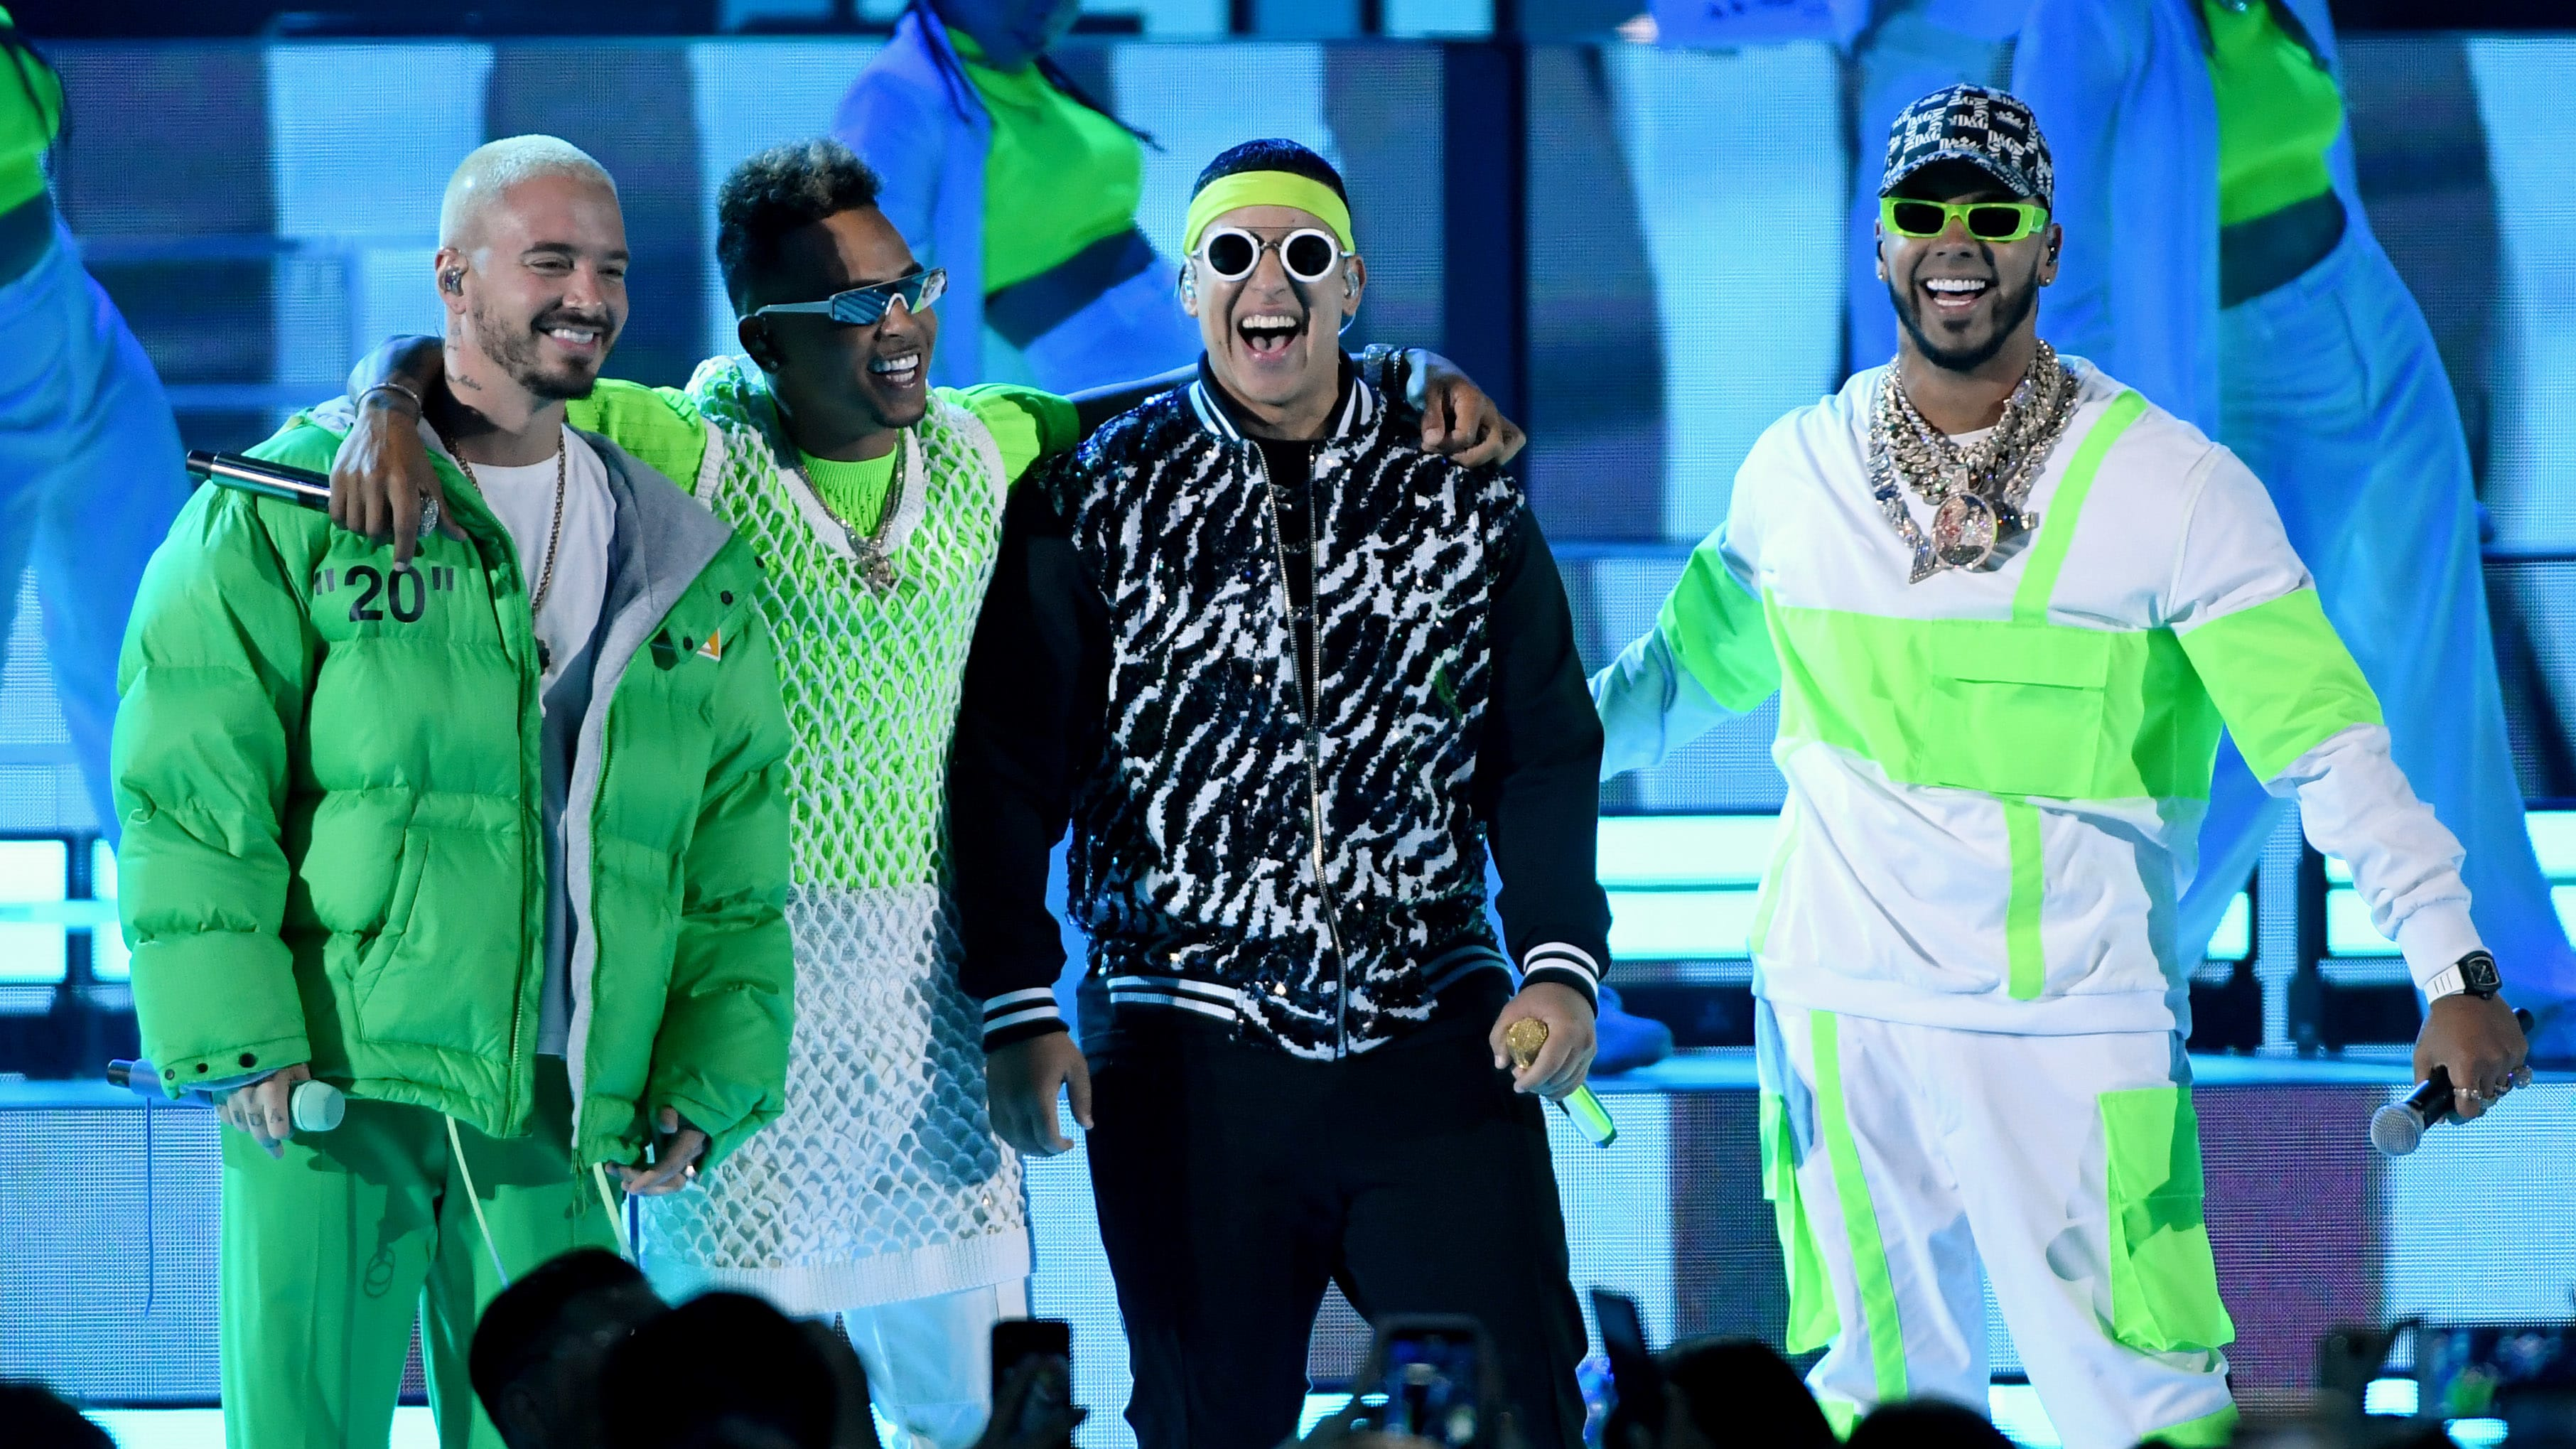 LAS VEGAS, NEVADA - APRIL 25:  (L-R) J Balvin, Ozuna, Daddy Yankee and Anuel AA perform during the 2019 Billboard Latin Music Awards at the Mandalay Bay Events Center on April 25, 2019 in Las Vegas, Nevada.  (Photo by Ethan Miller/Getty Images)